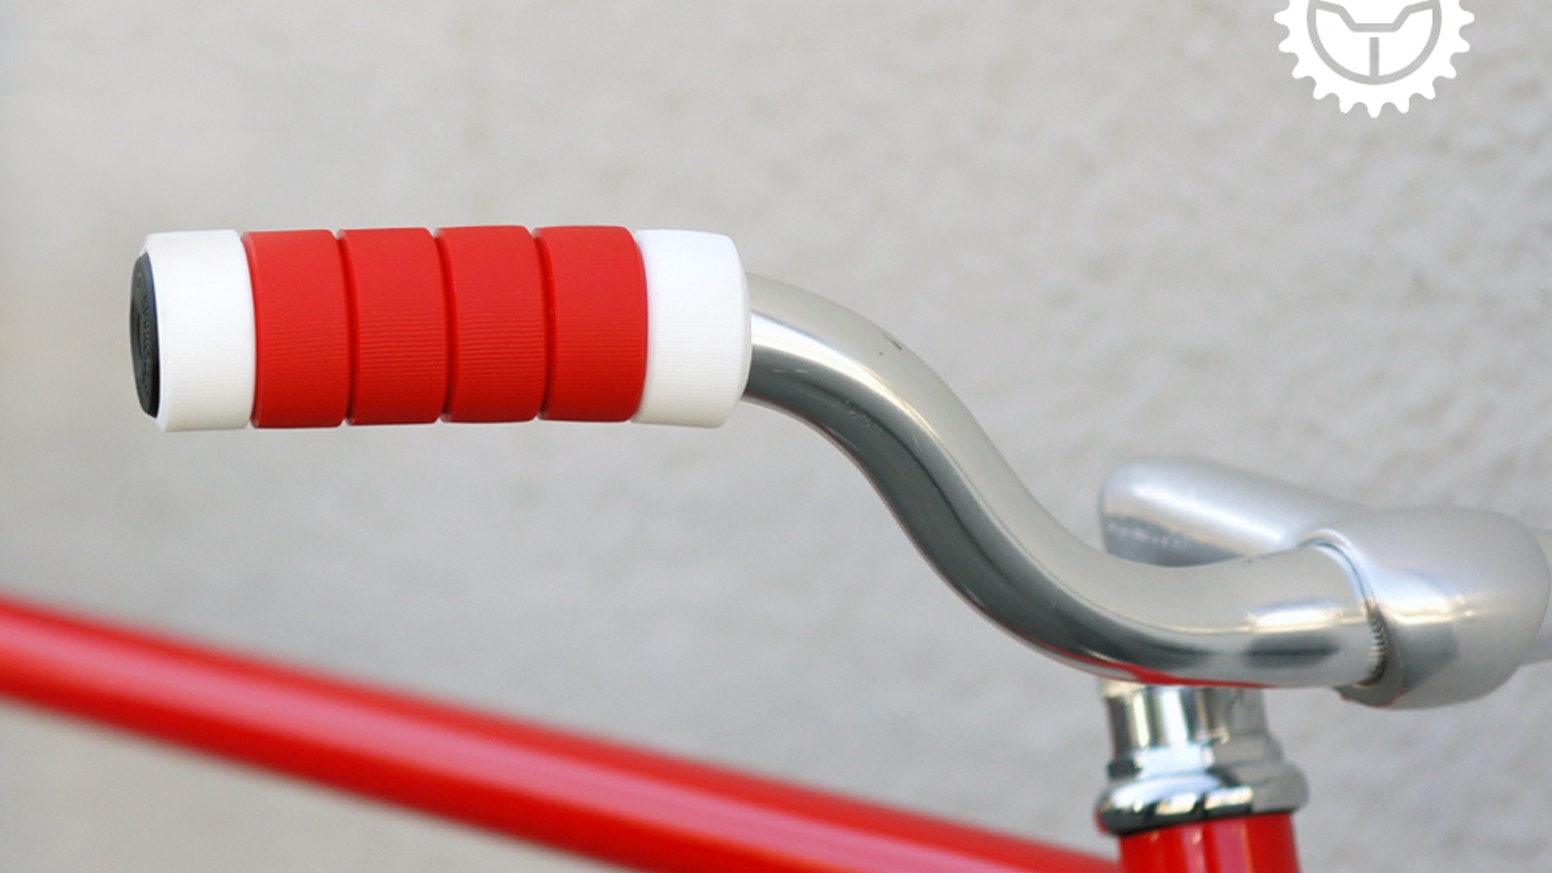 Griprings A Bicycle Grip Made Of Individual Silicone Rings By